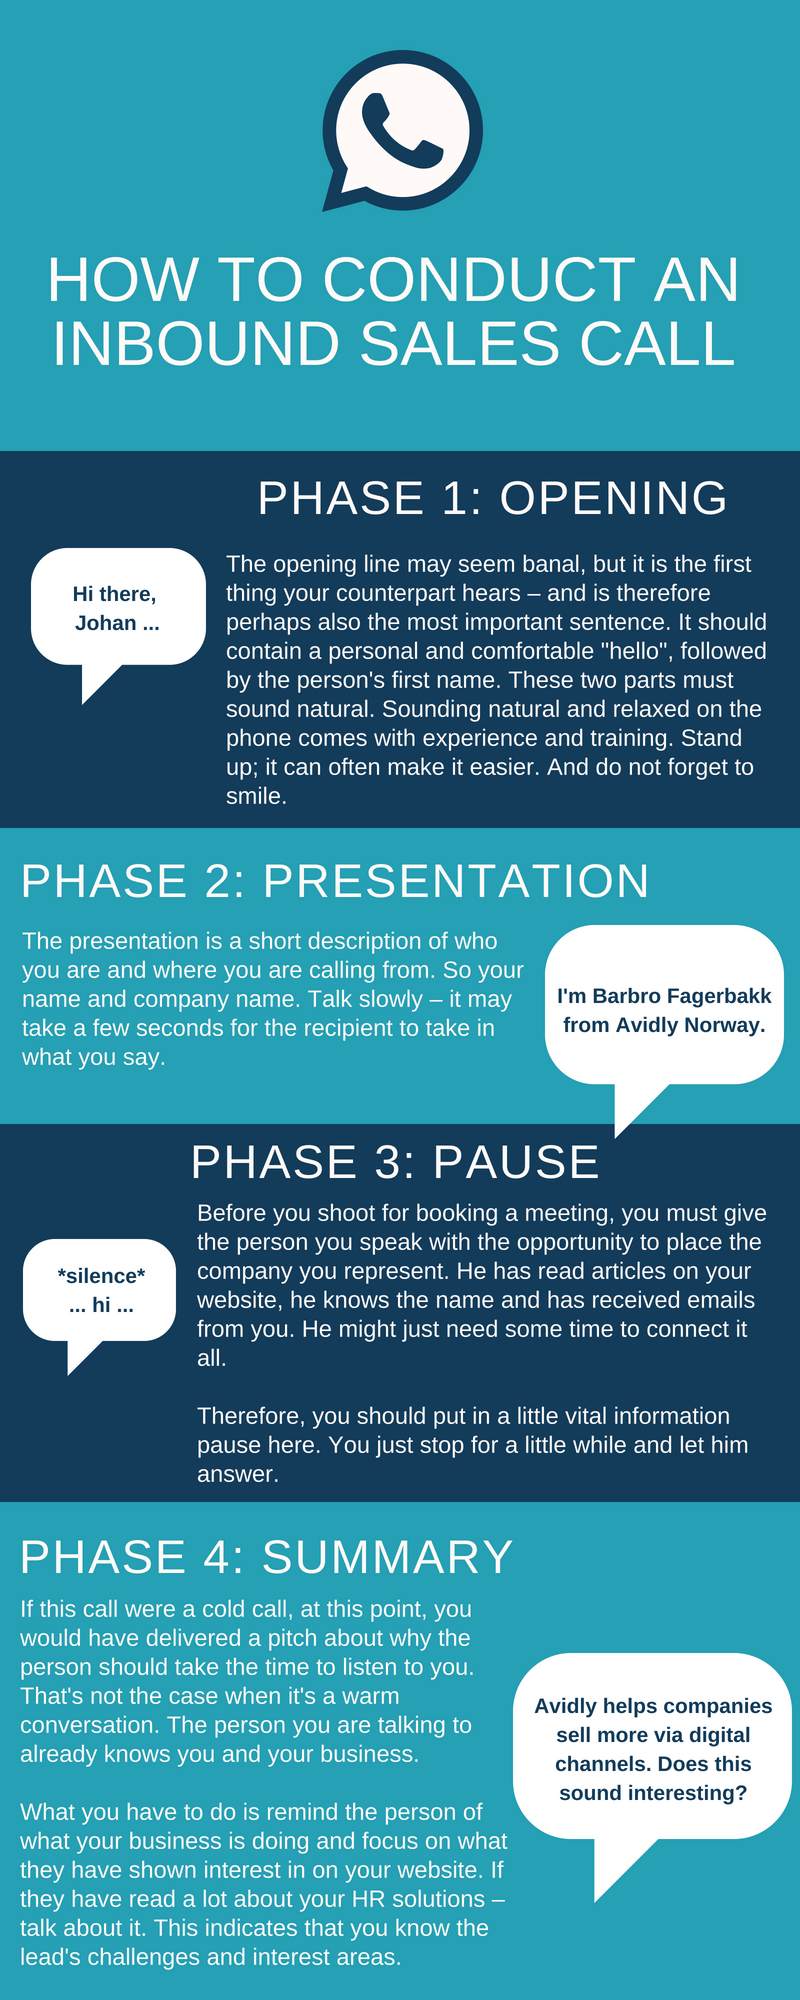 How to conduct an inbound sales call, phase 1-4